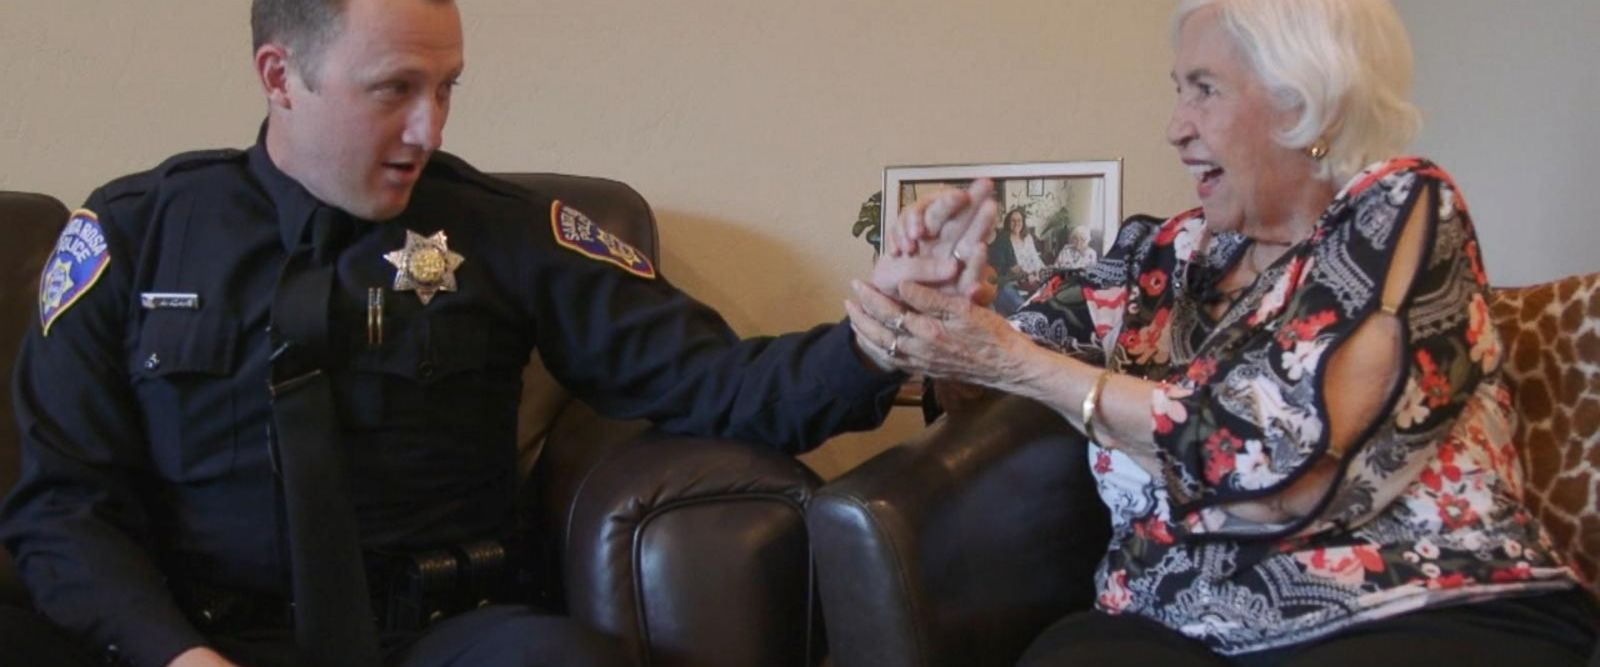 VIDEO: Santa Rosa police officer reunites with 87-year-old he saved in fire: Part 3